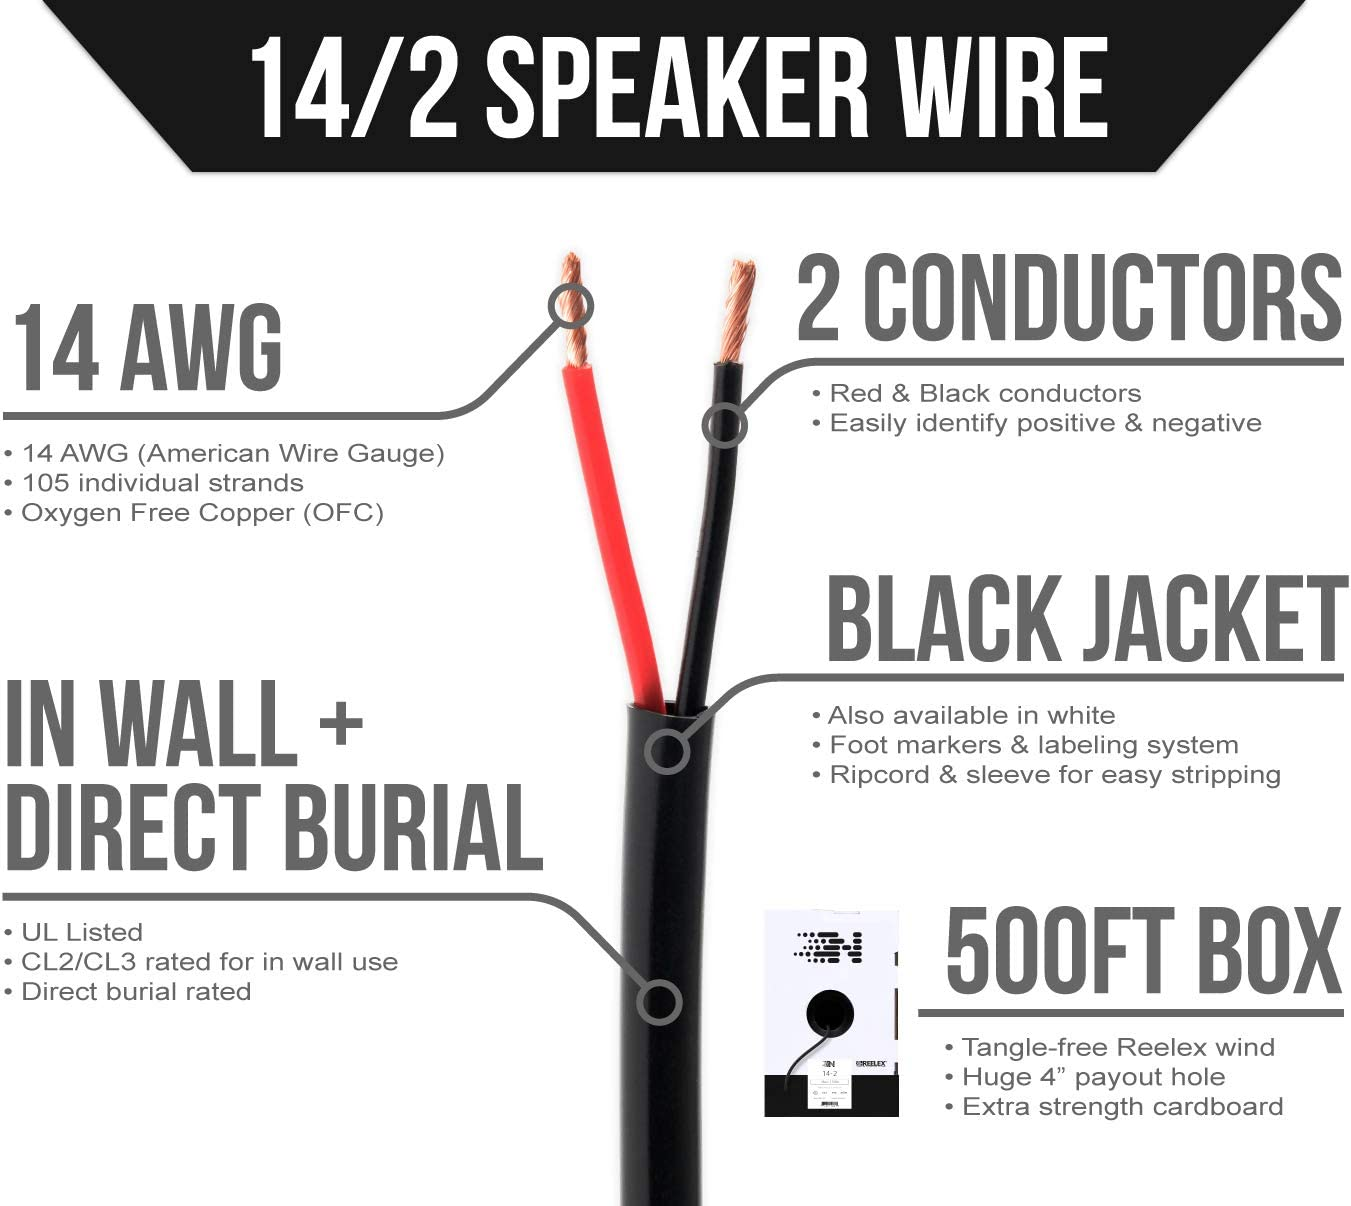 UL Listed In Wall Direct Burial Oxygen-Free Copper 14 AWG//Gauge 2 Conductor Rated OFC Next 14//2 Speaker Wire - 500 Foot Bulk Cable Pull Box White and Outdoor//In Ground CL2//CL3